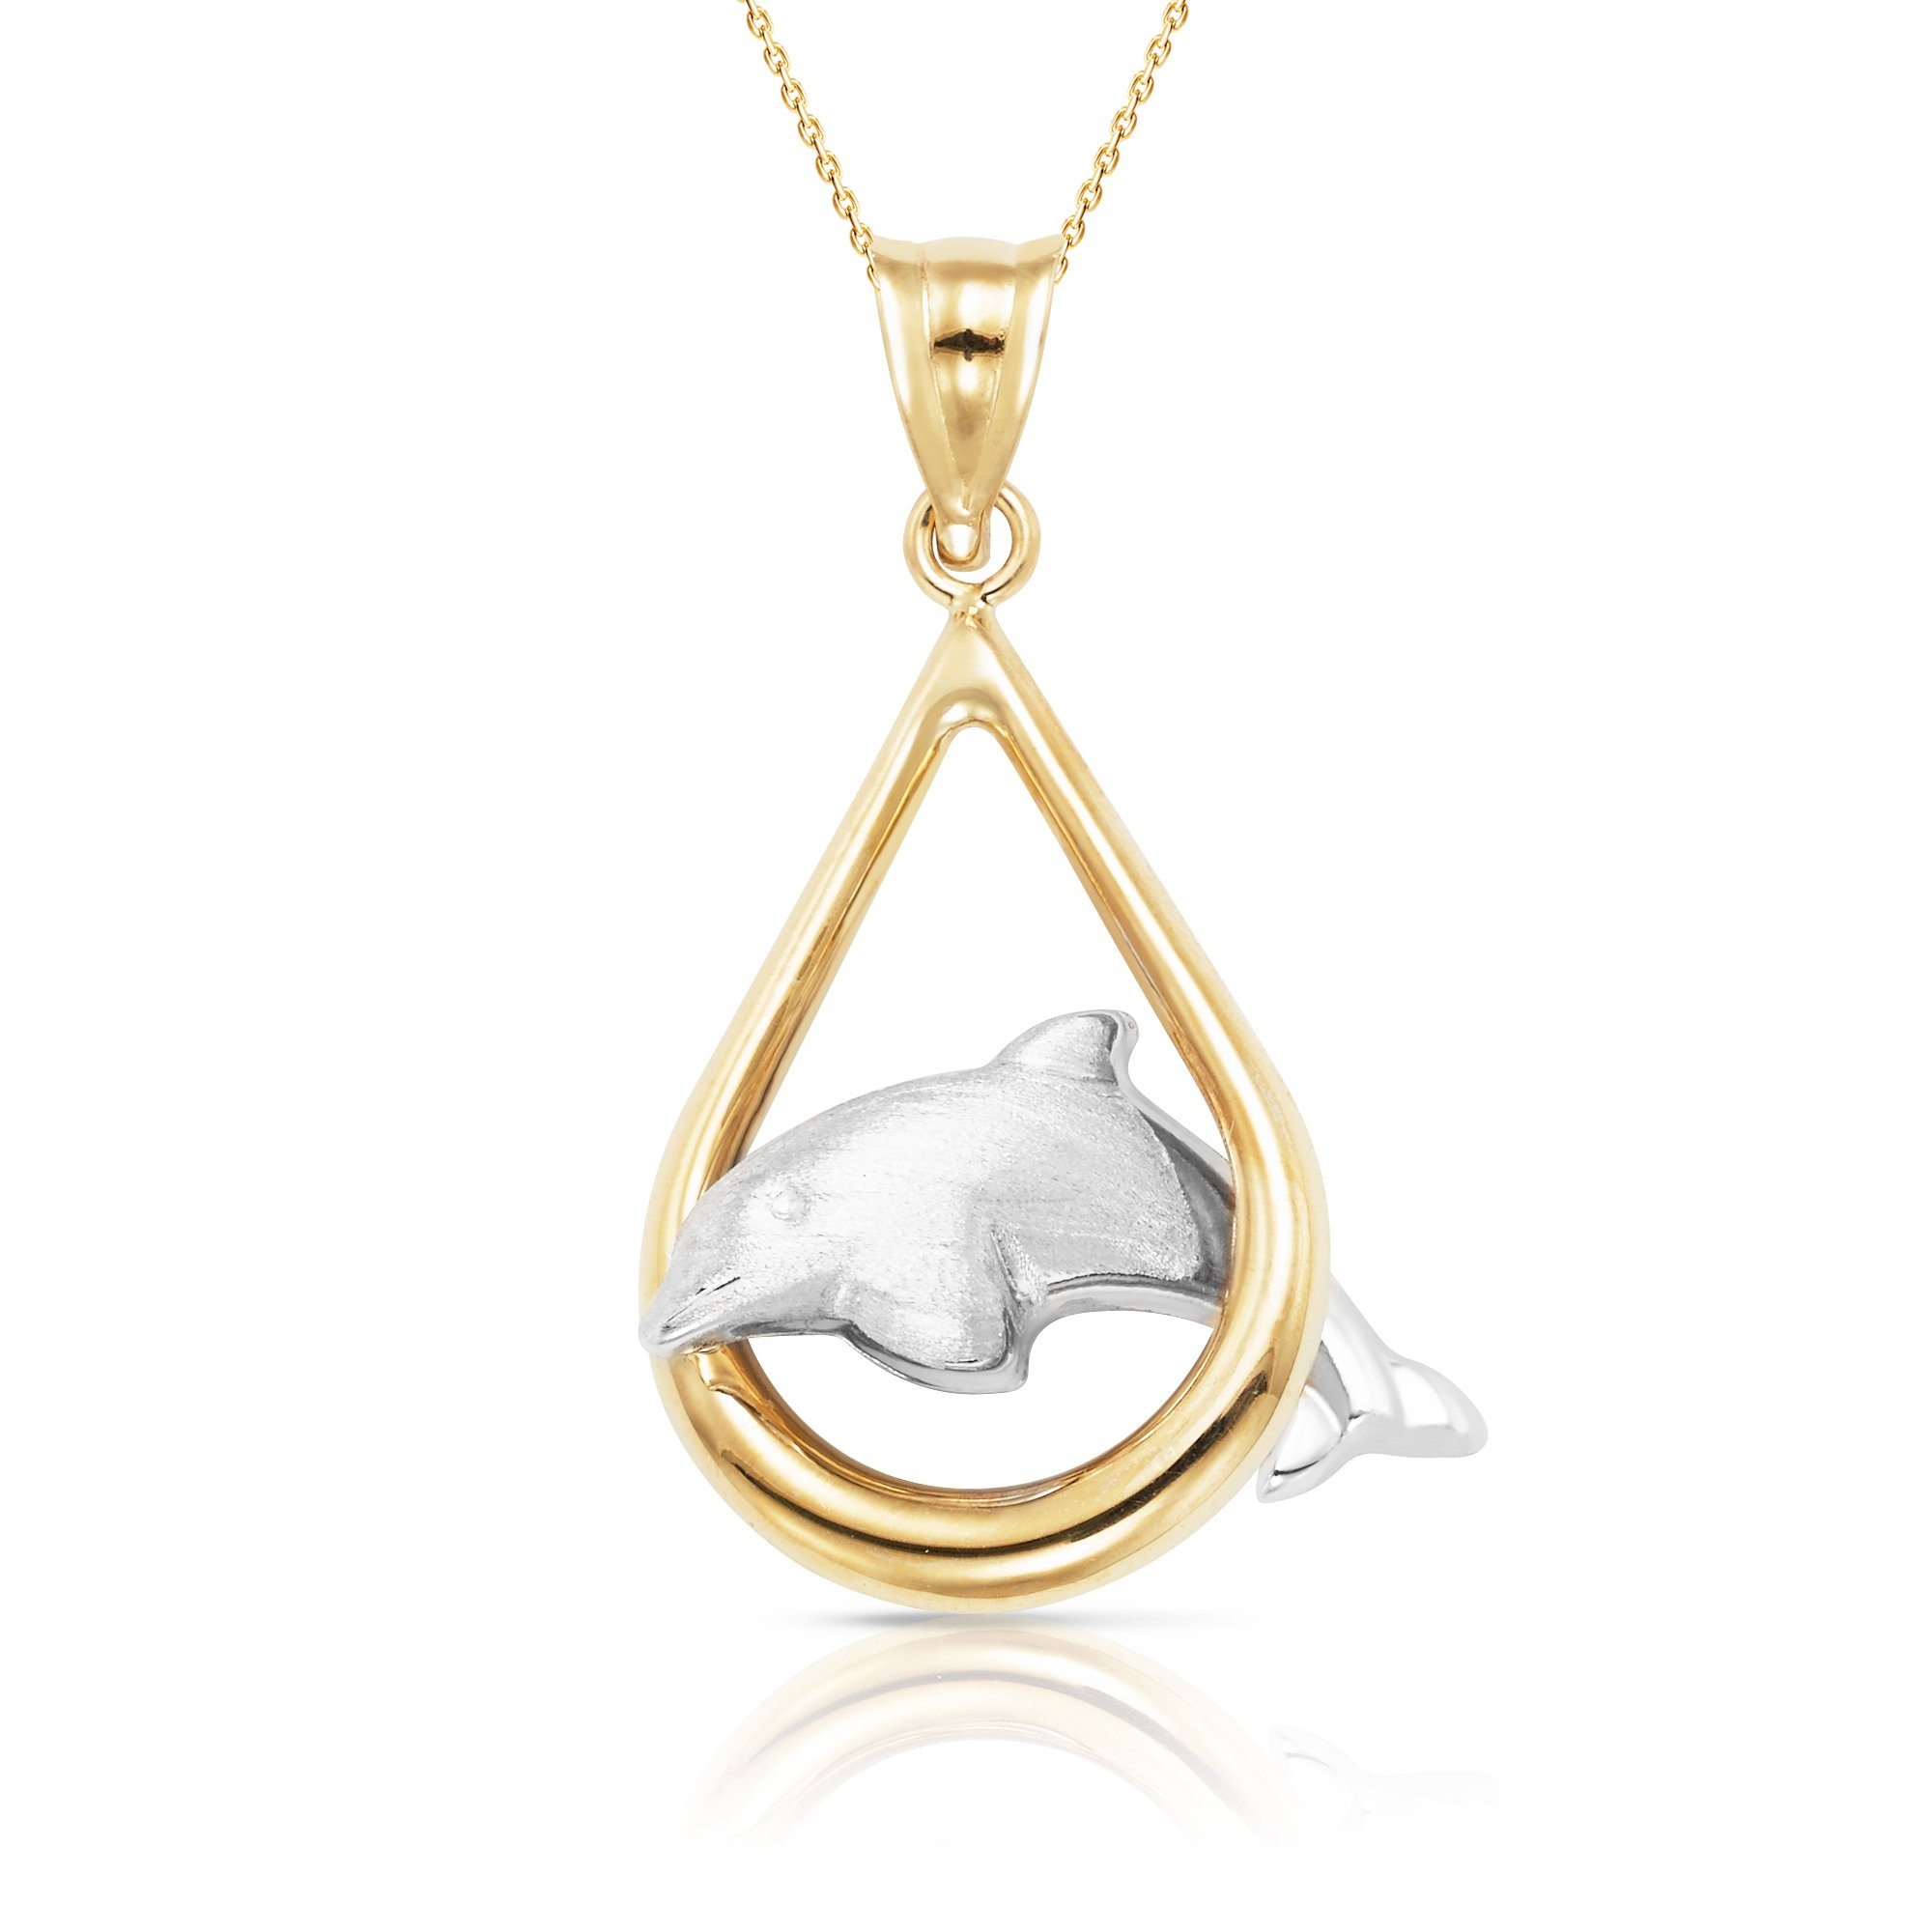 New 2017 Style 14k White and Yellow Solid Gold Dolphin Pendant Necklace For Women, Men and Children (22, yellow-gold)